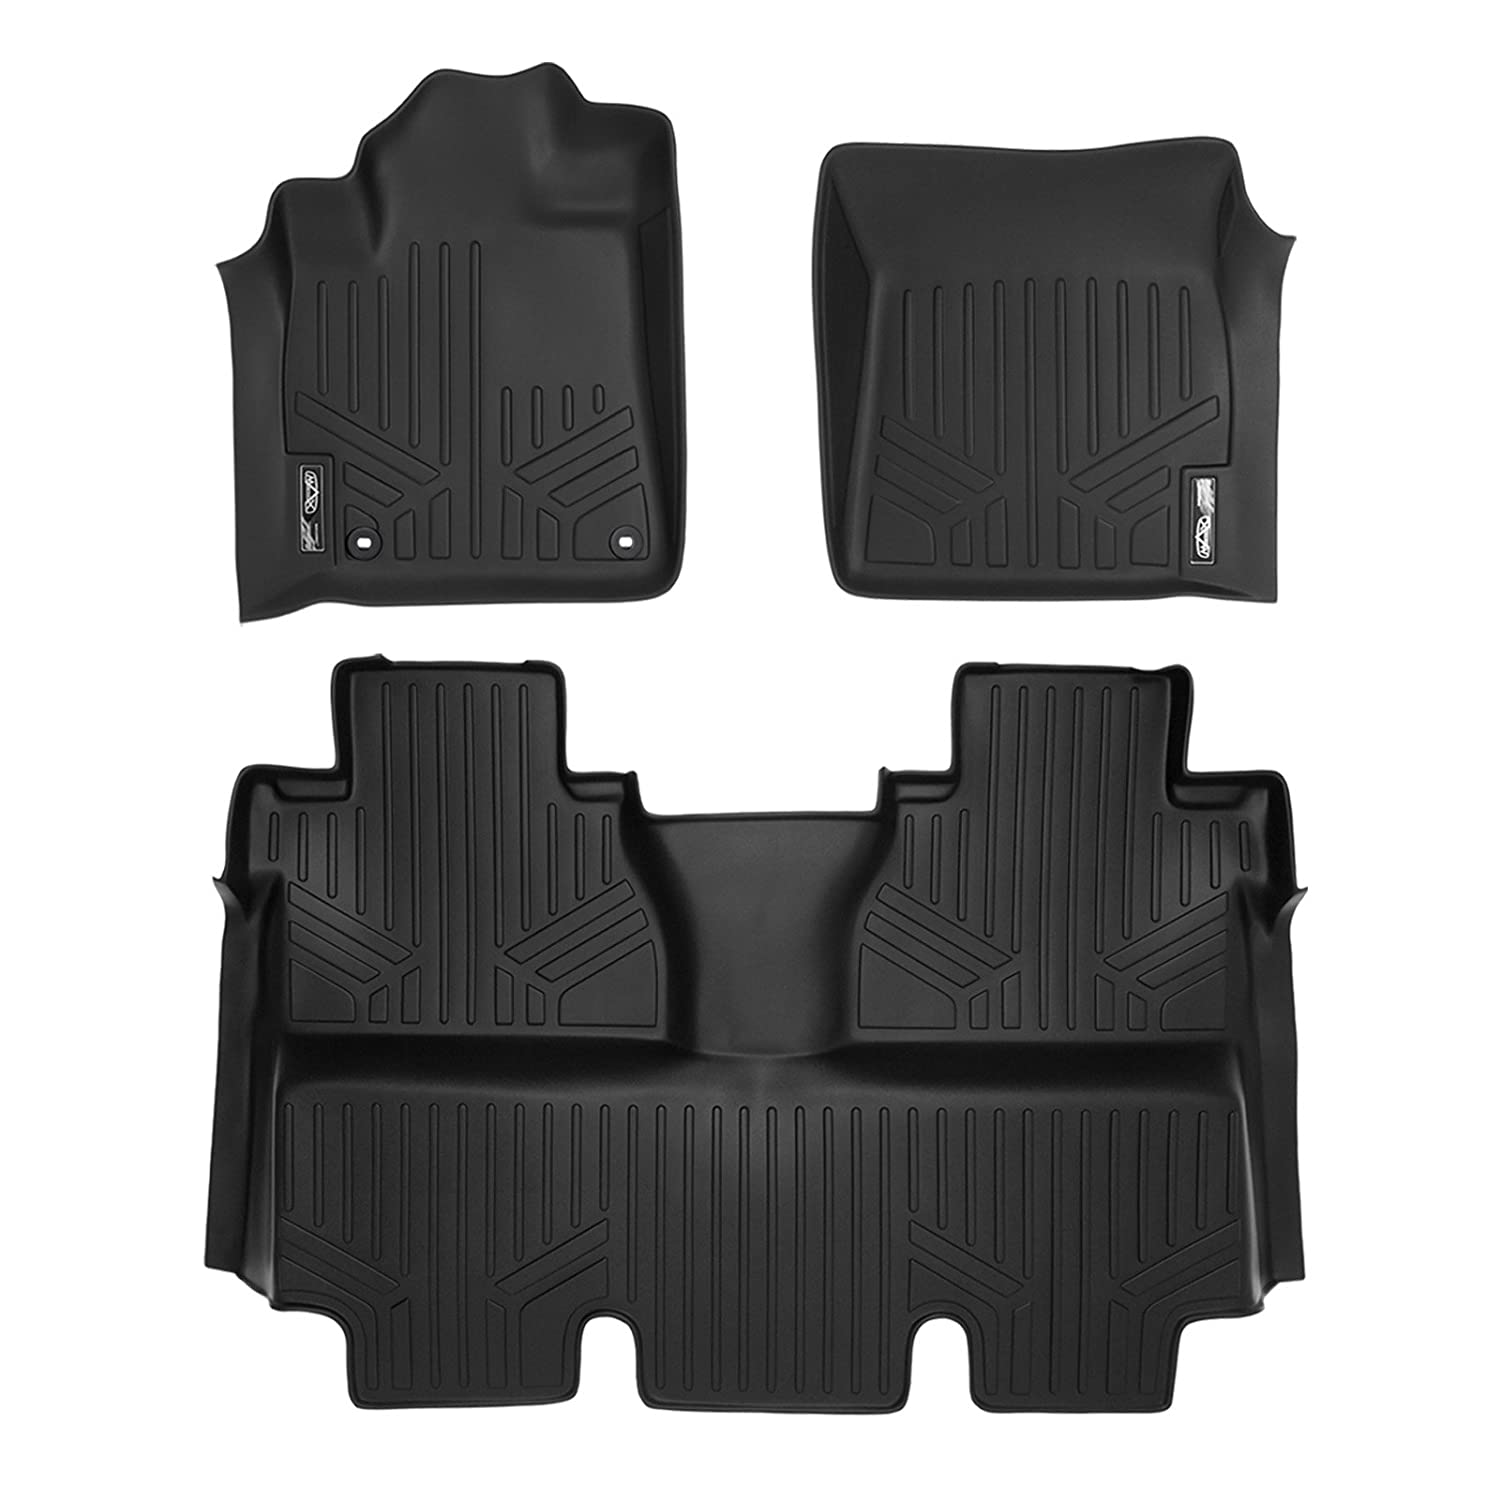 SMARTLINER Floor Mats 2 Row Liner Set Black for 2014-2018 Toyota Tundra CrewMax Cab (with Coverage Under 2nd Row Seat)